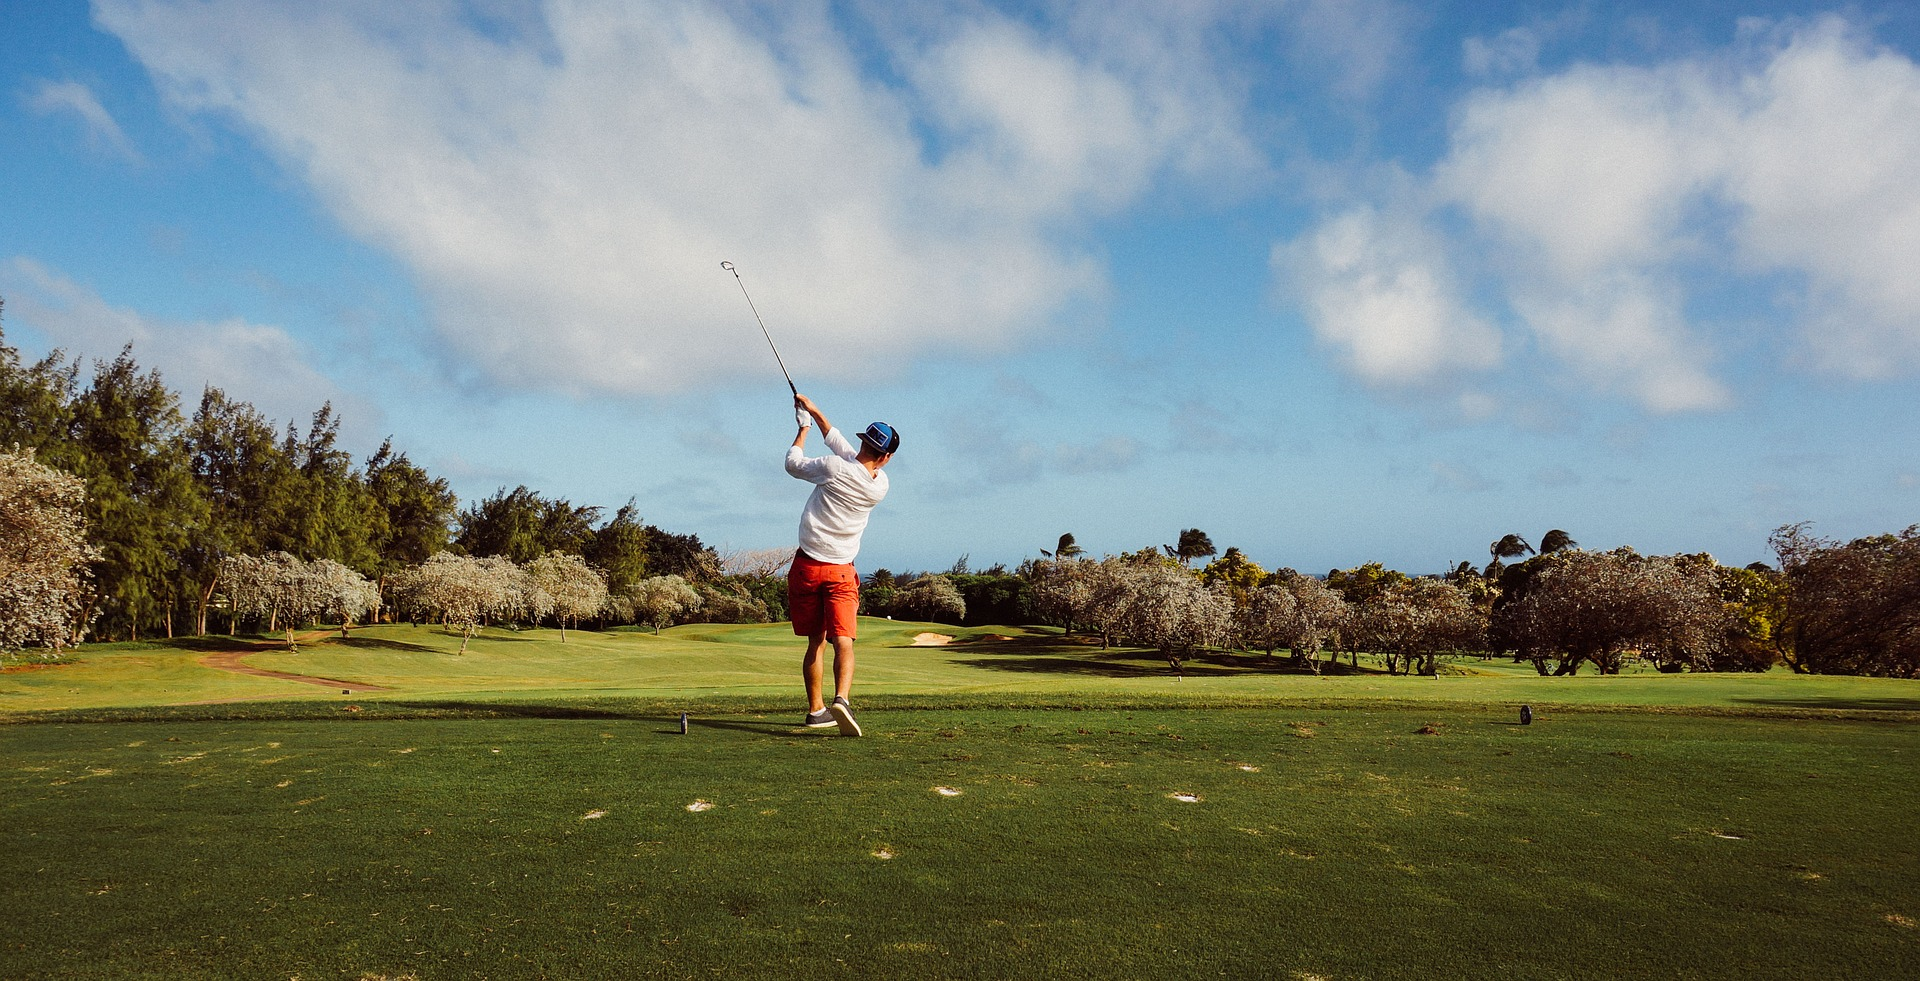 8 Mistakes Beginner Golfers Make and How to Avoid Them